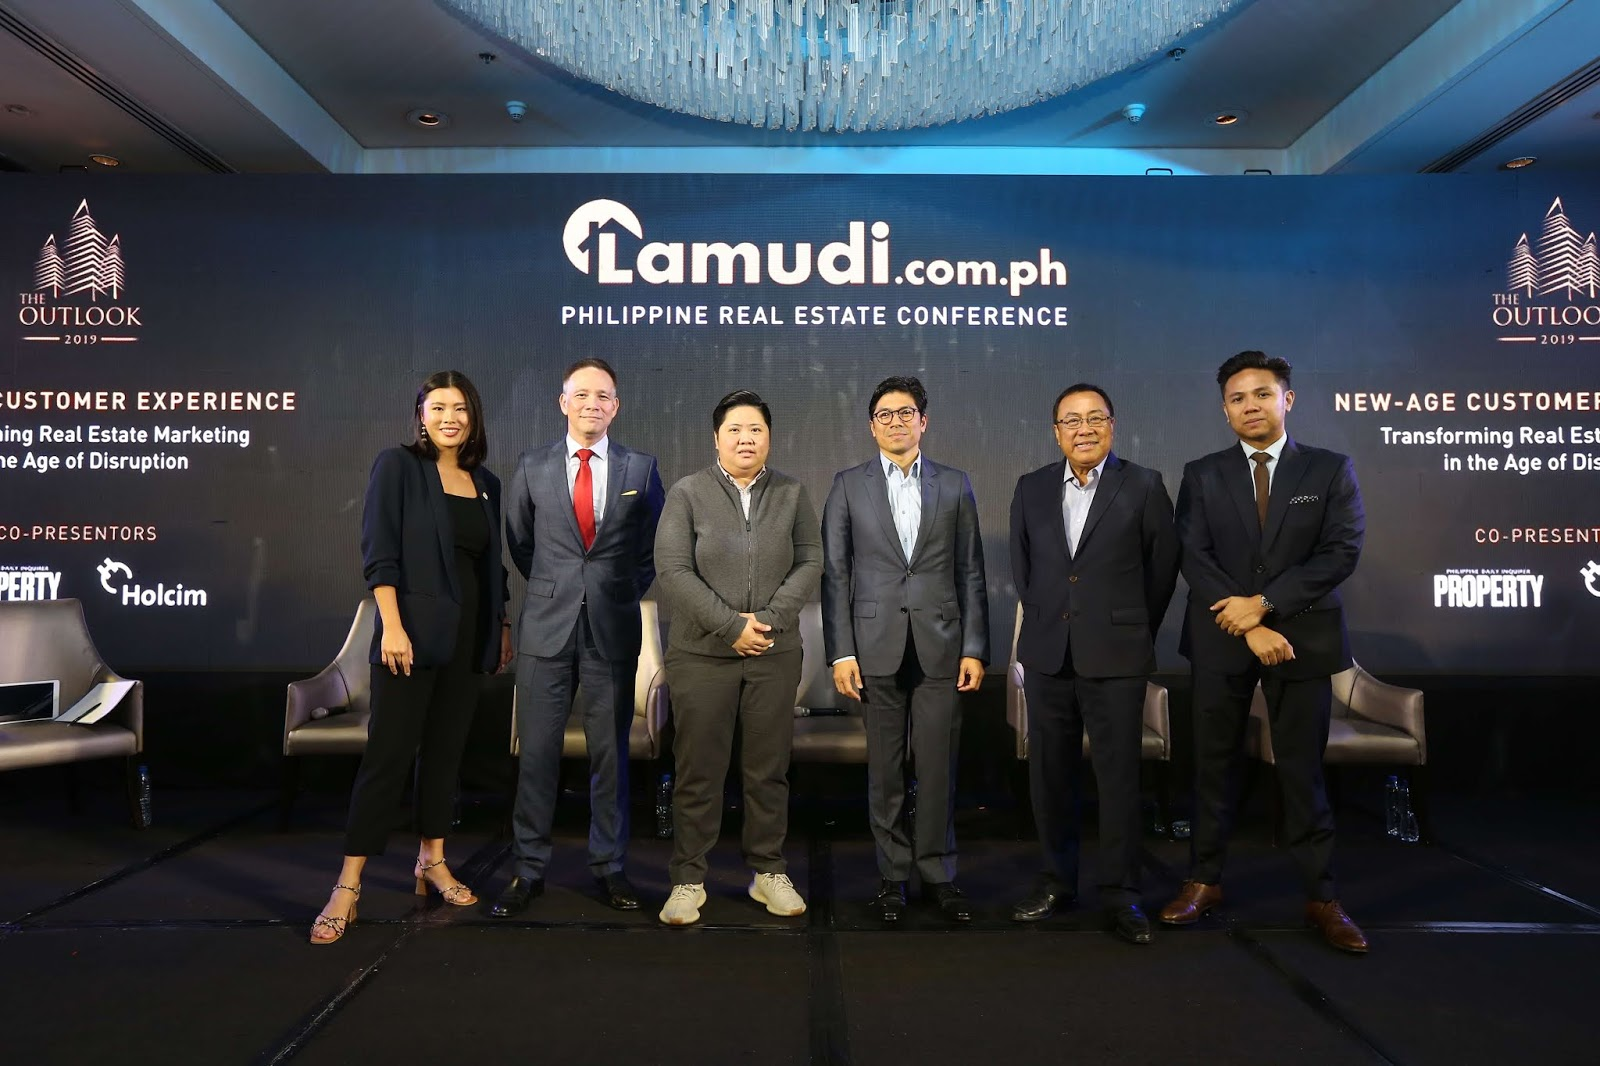 Lamudi's Philippine Real Estate Conference 2019: Shaping the Future of Real Estate